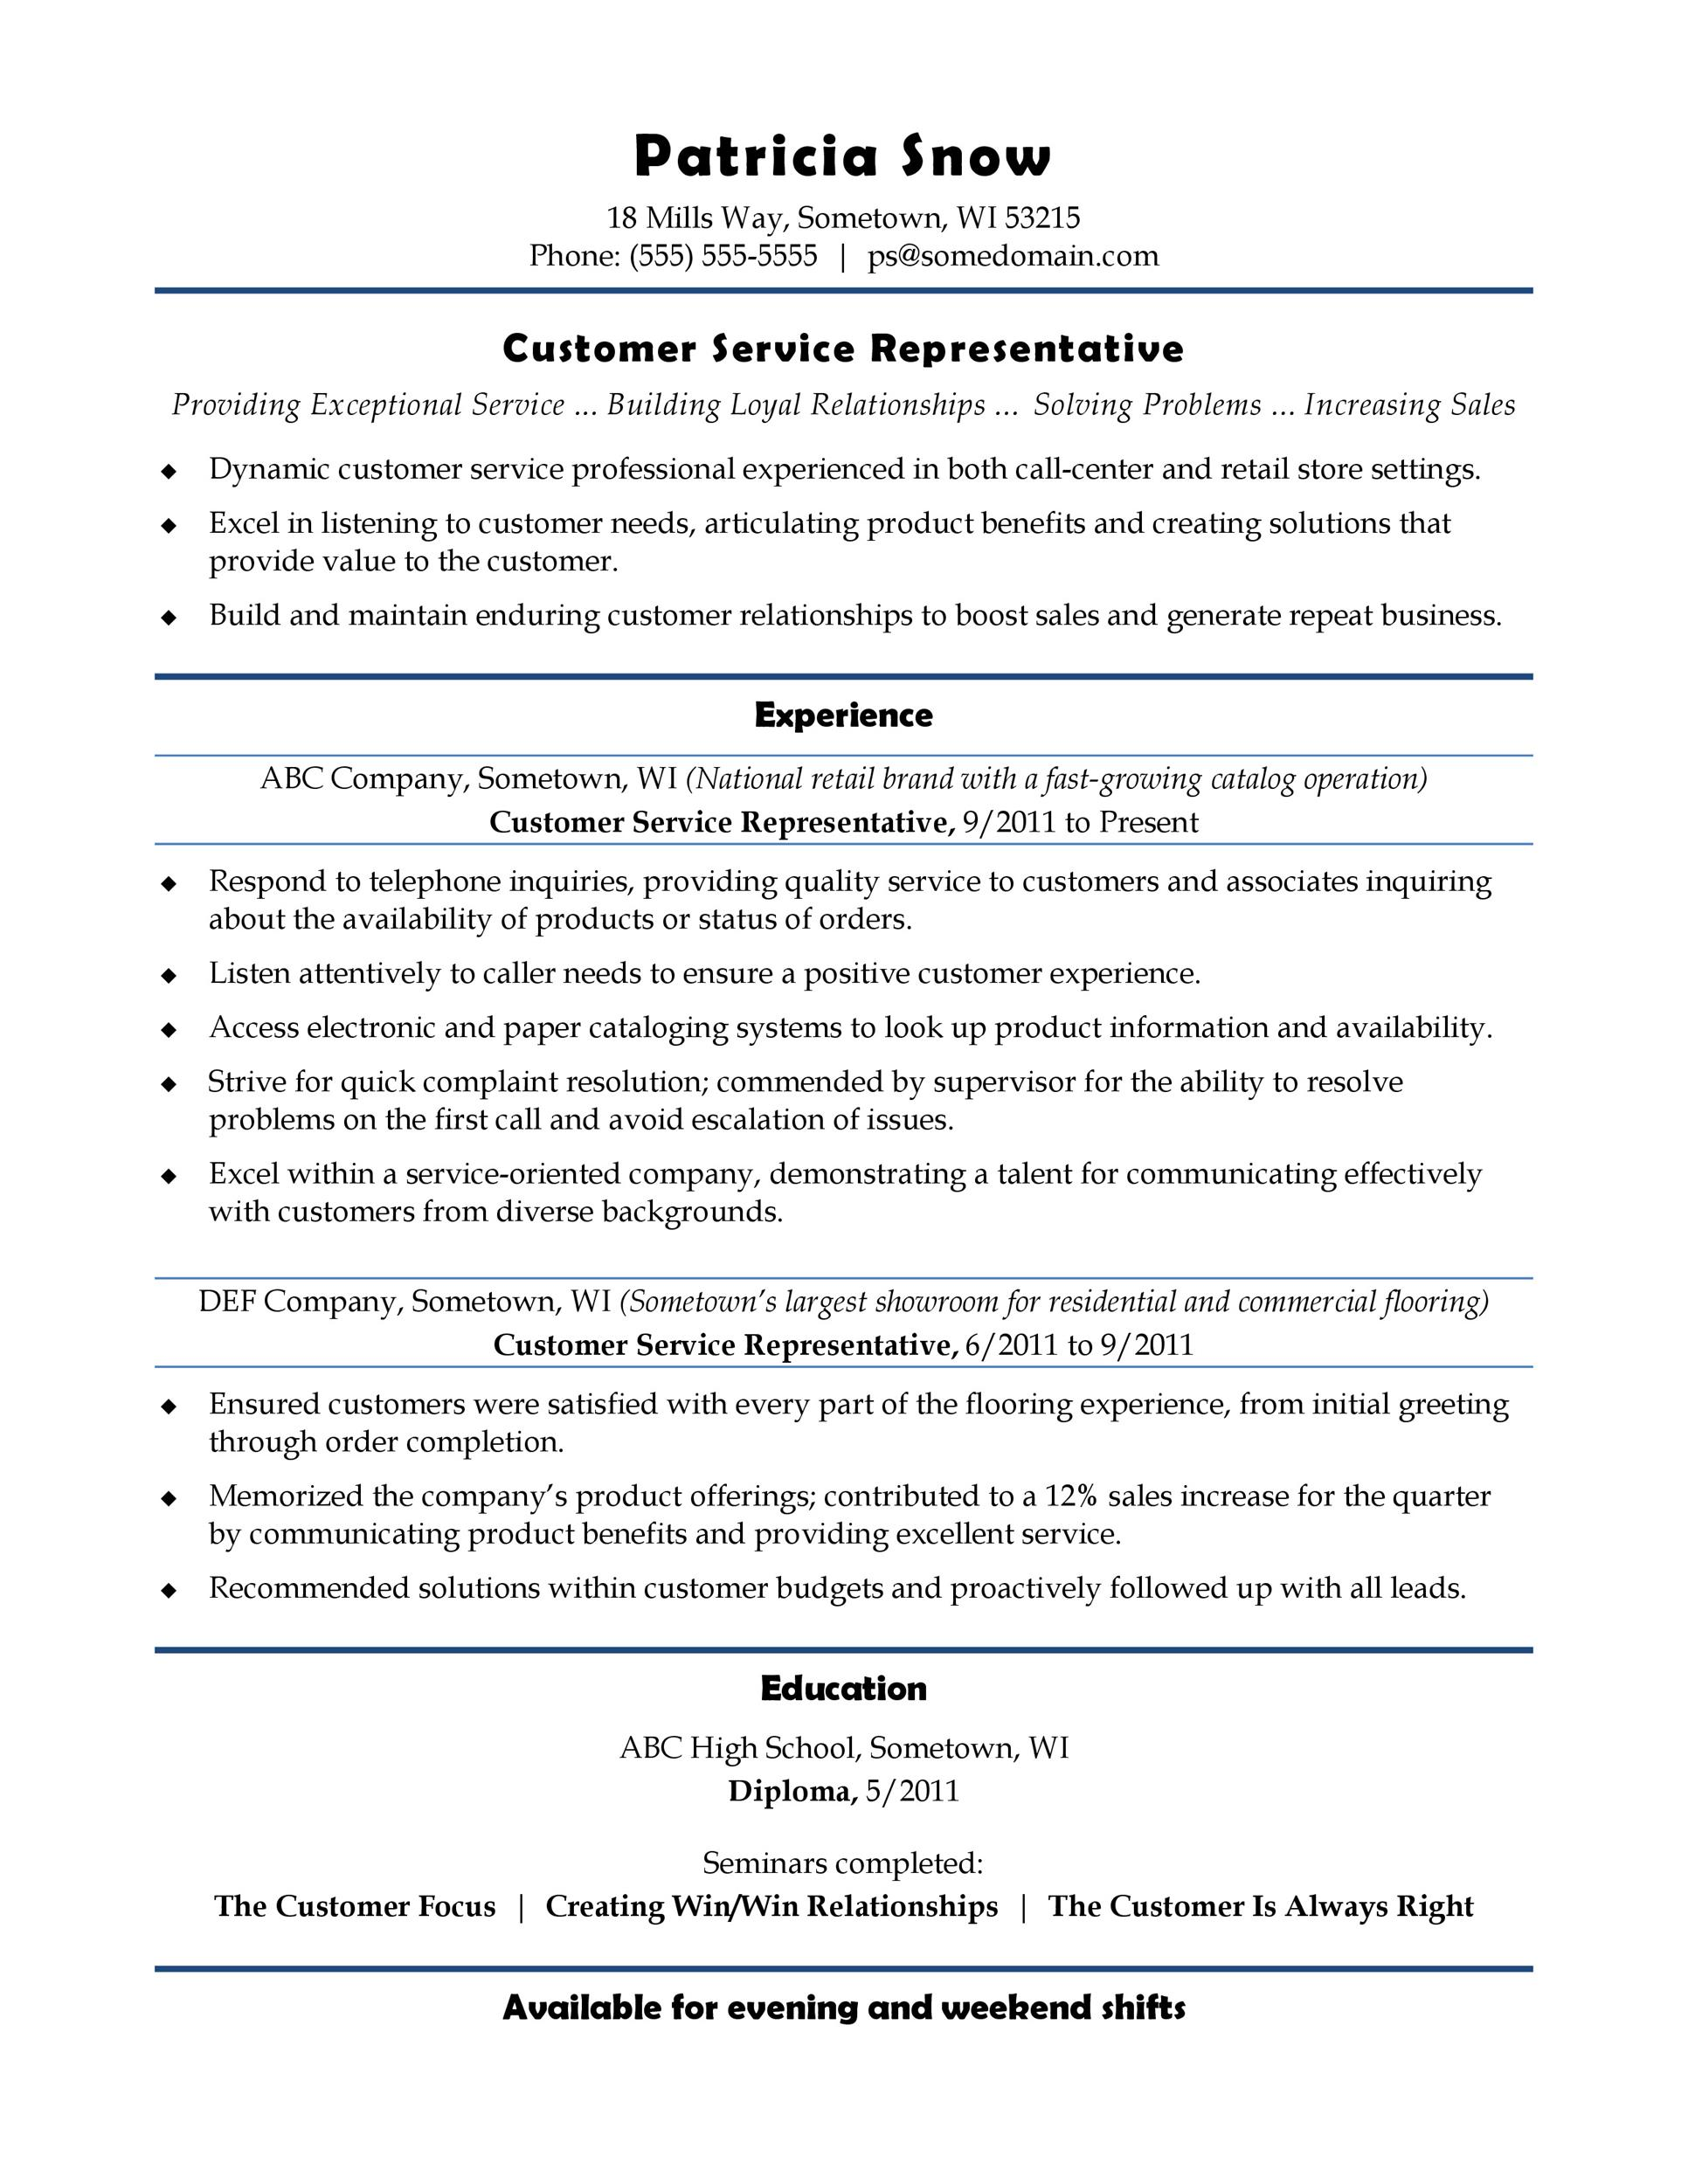 updated resume format 2014 free download best customer service examples template lab professional